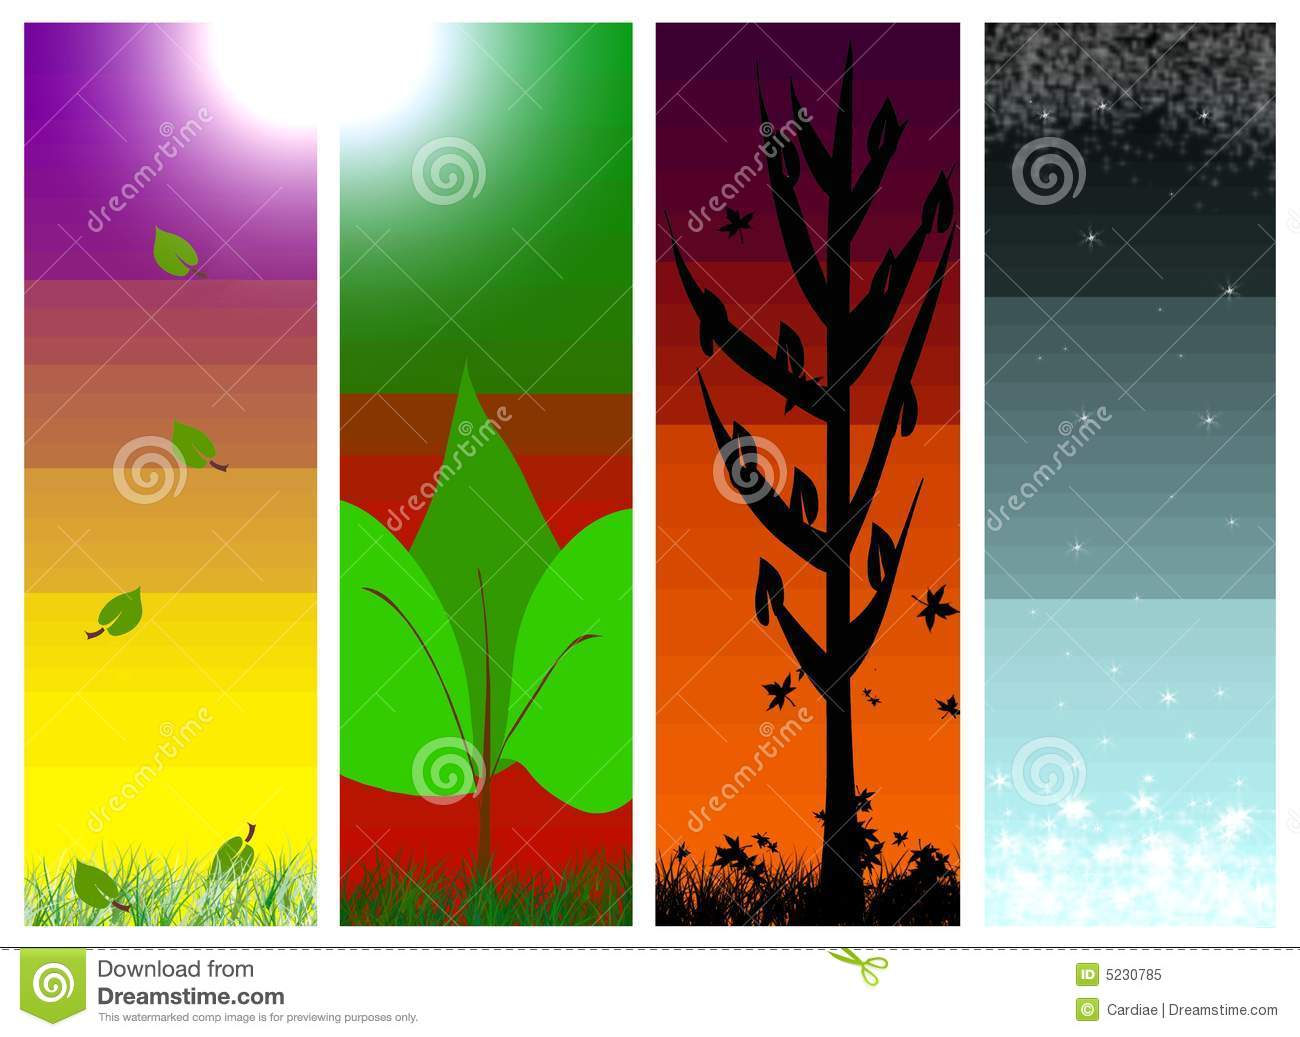 Free Fall Download Wallpaper Four 4 Seasons Of The Year Spring Summer Fall Wint Royalty